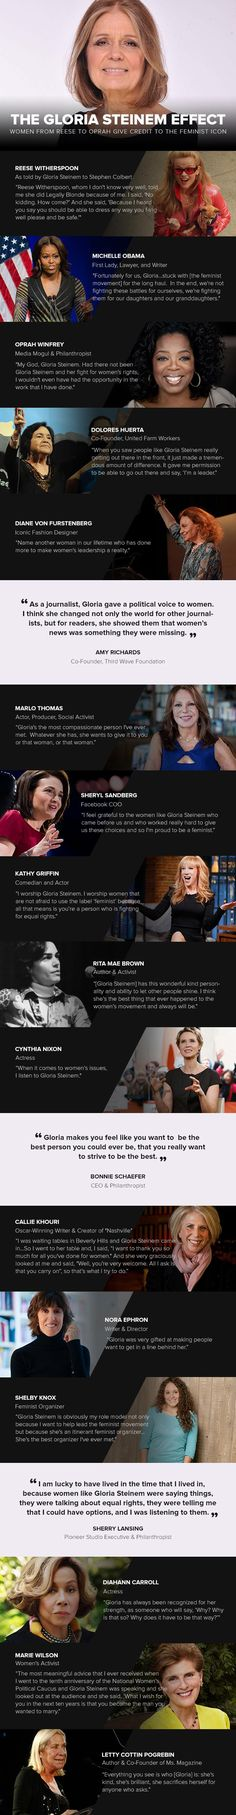 19 powerful women explain the 'Gloria Steinem effect' and how it has shaped their lives - AOL.com